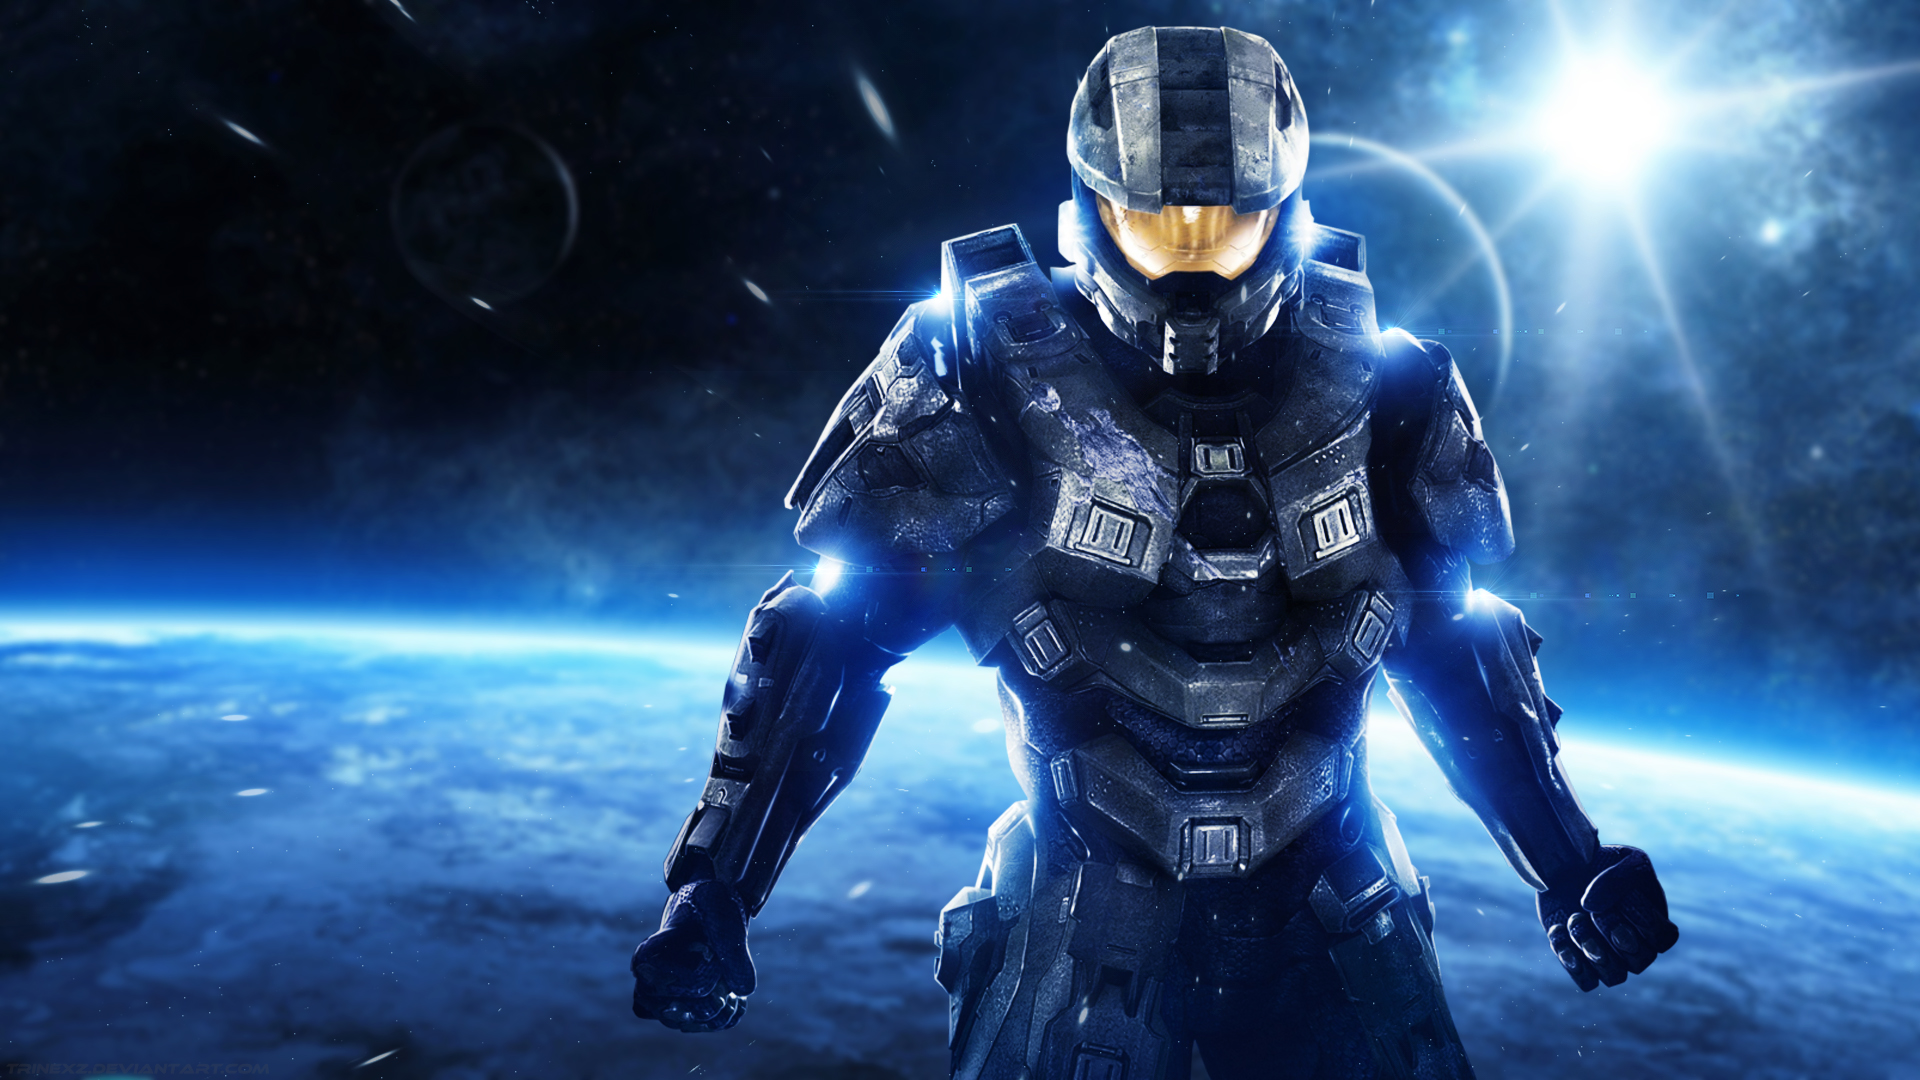 Halo master chief desktop wallpaper by trinexz on deviantart - Halo 4 pictures ...